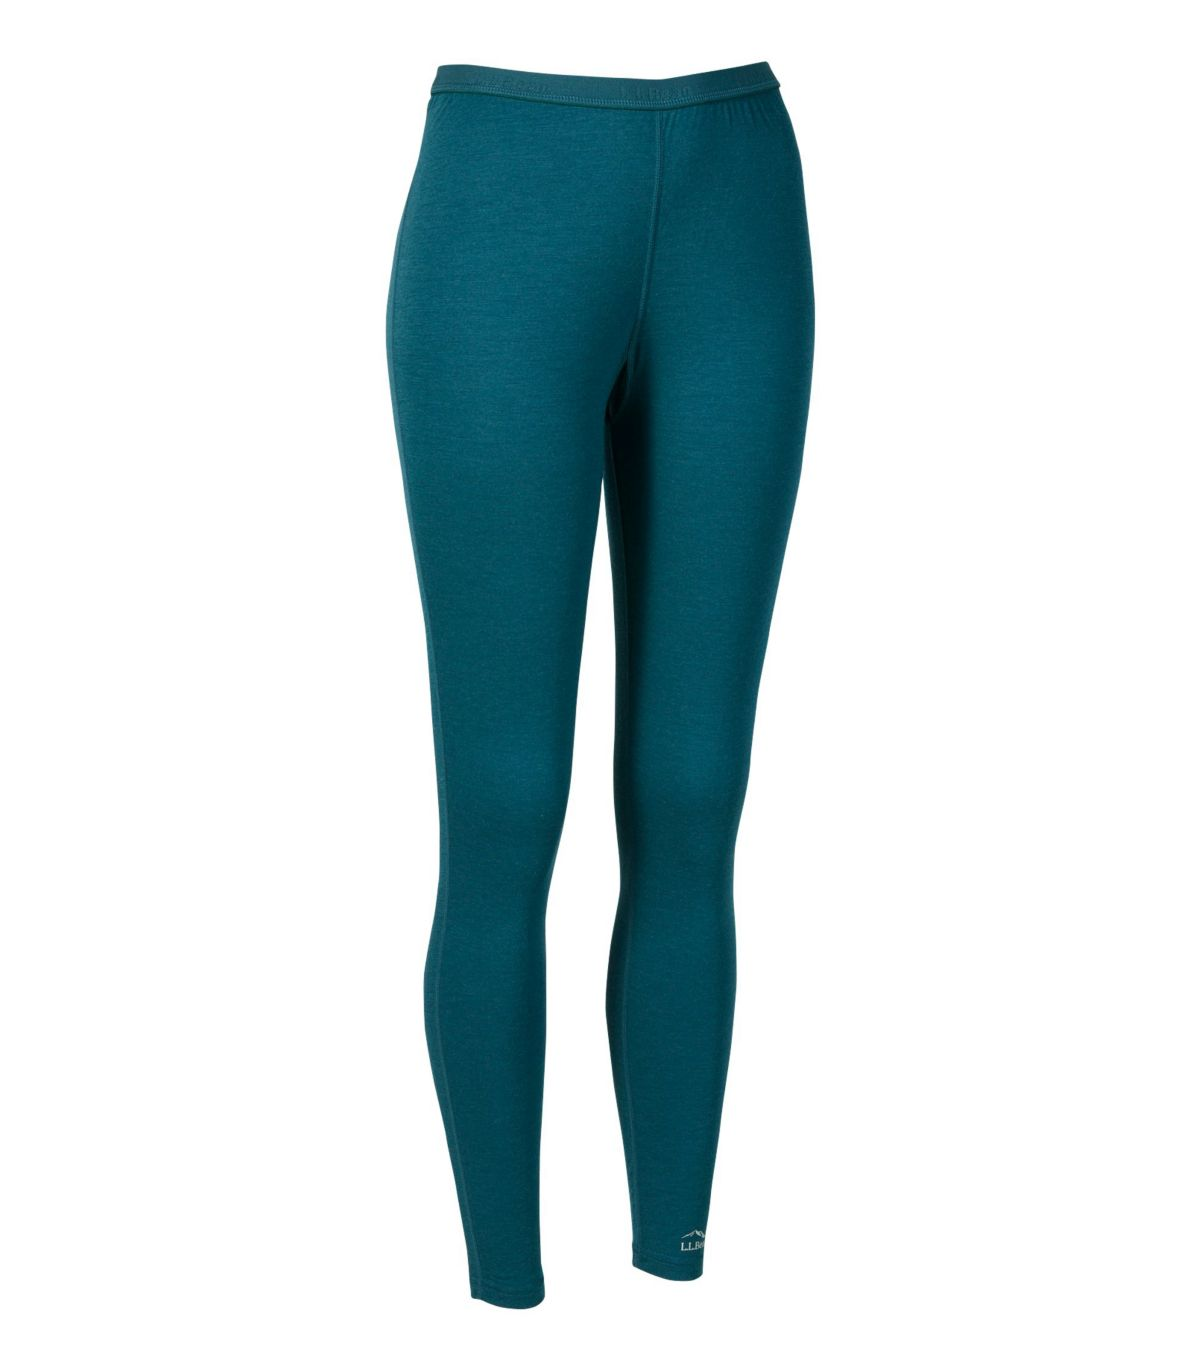 Women's Cresta Wool Ultralight Base Layer, Pants